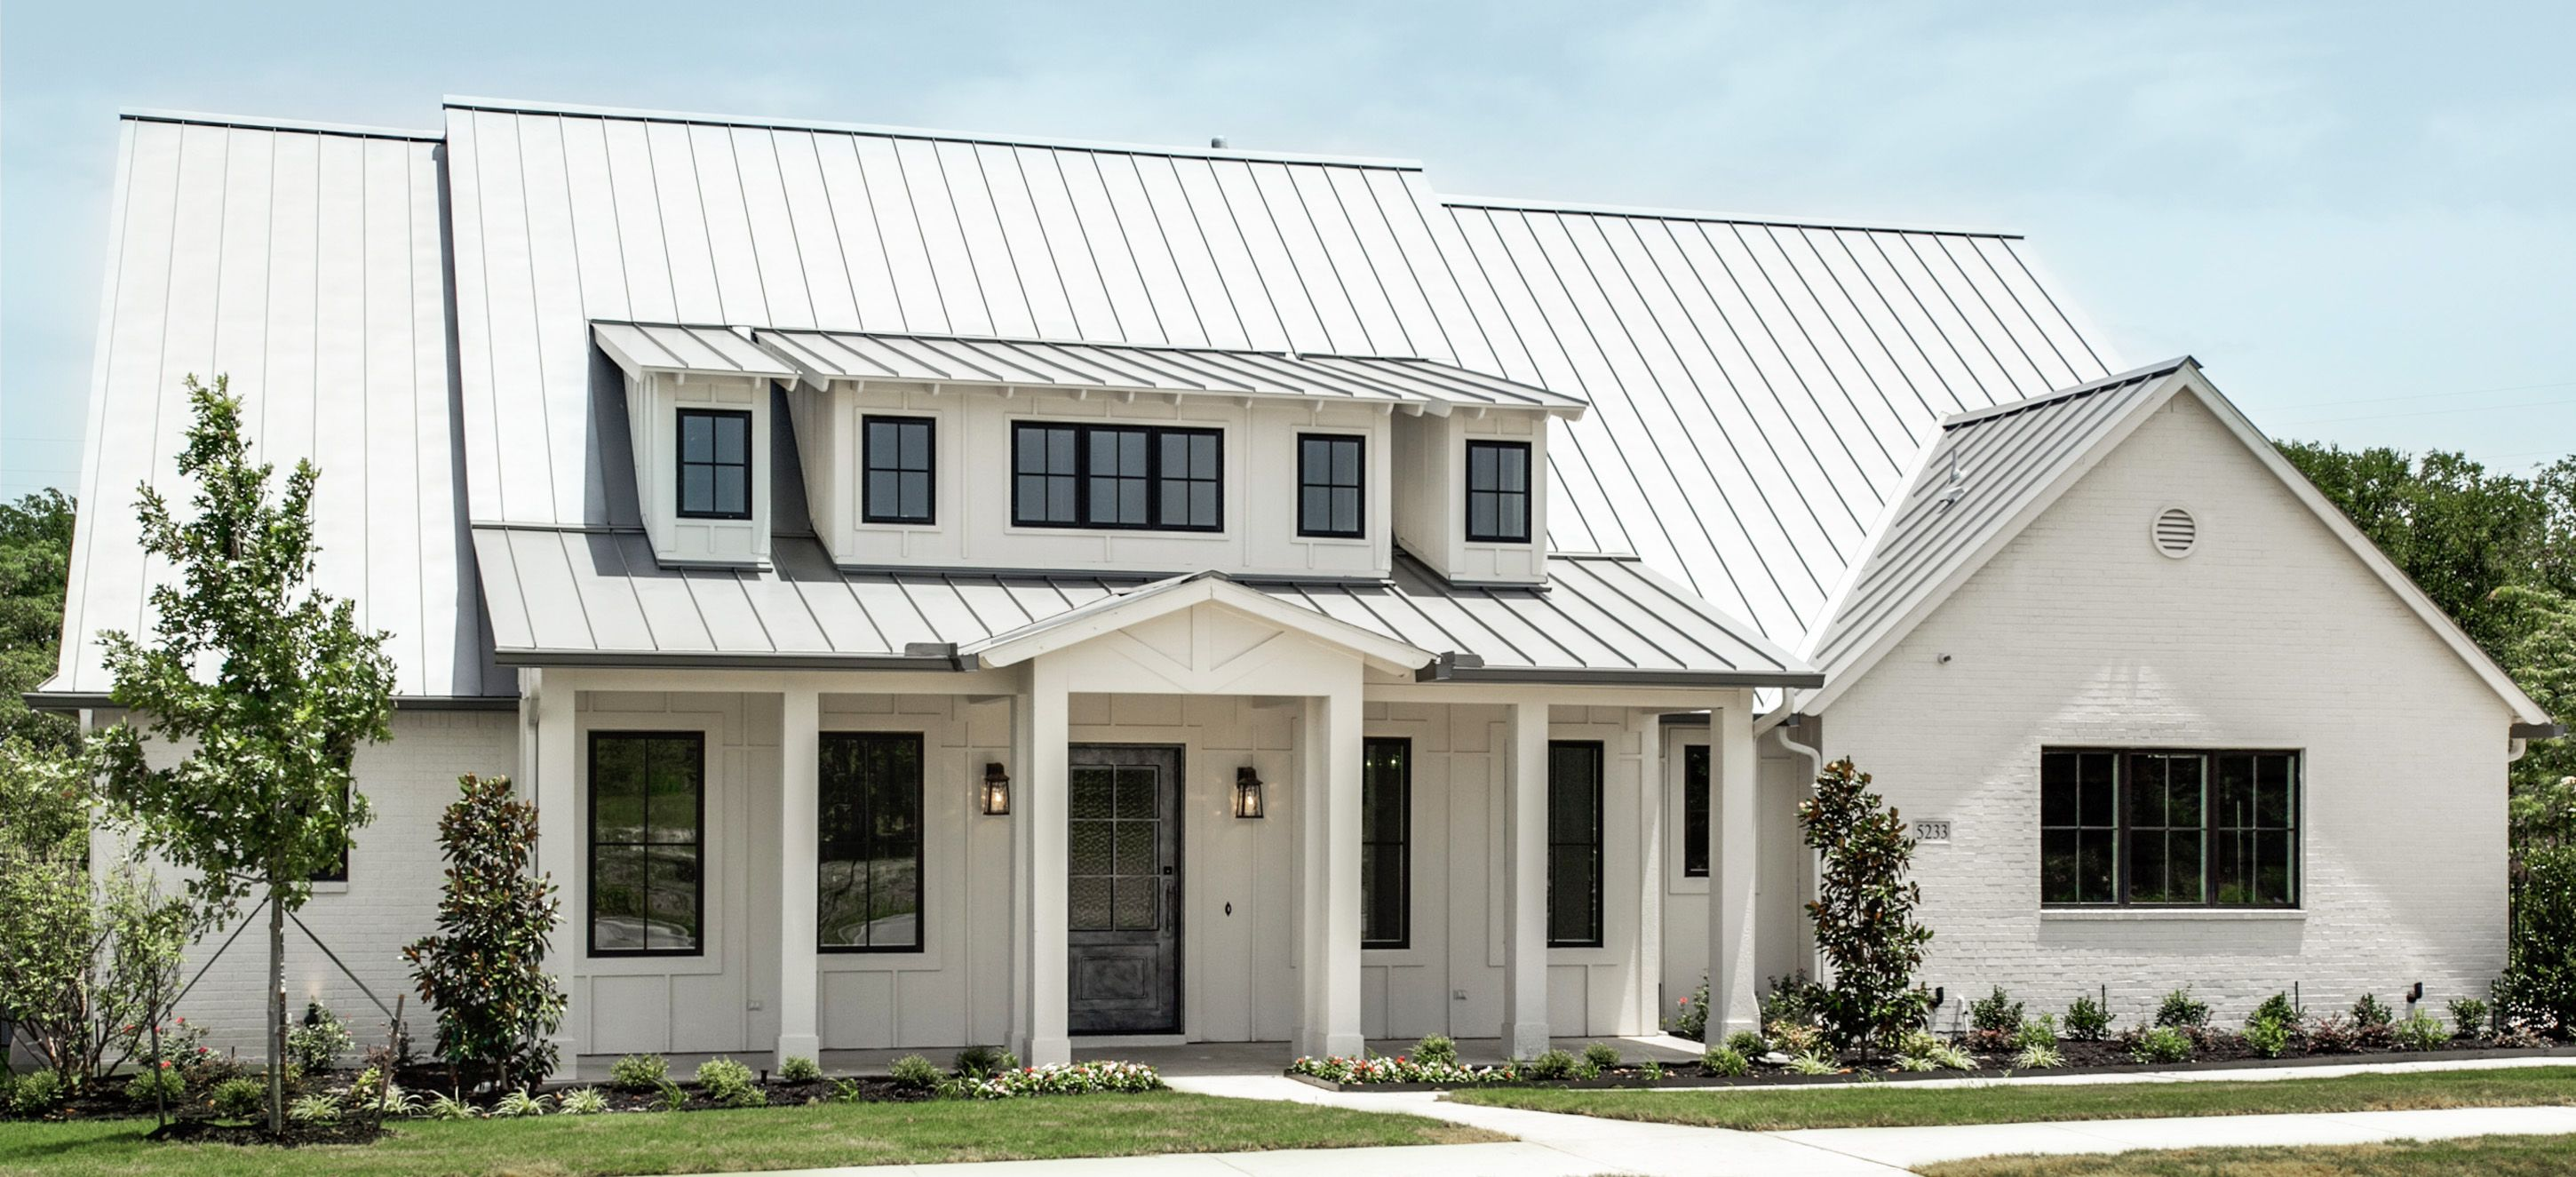 Modern farm house la cantera metal roof white painted Modern farm homes